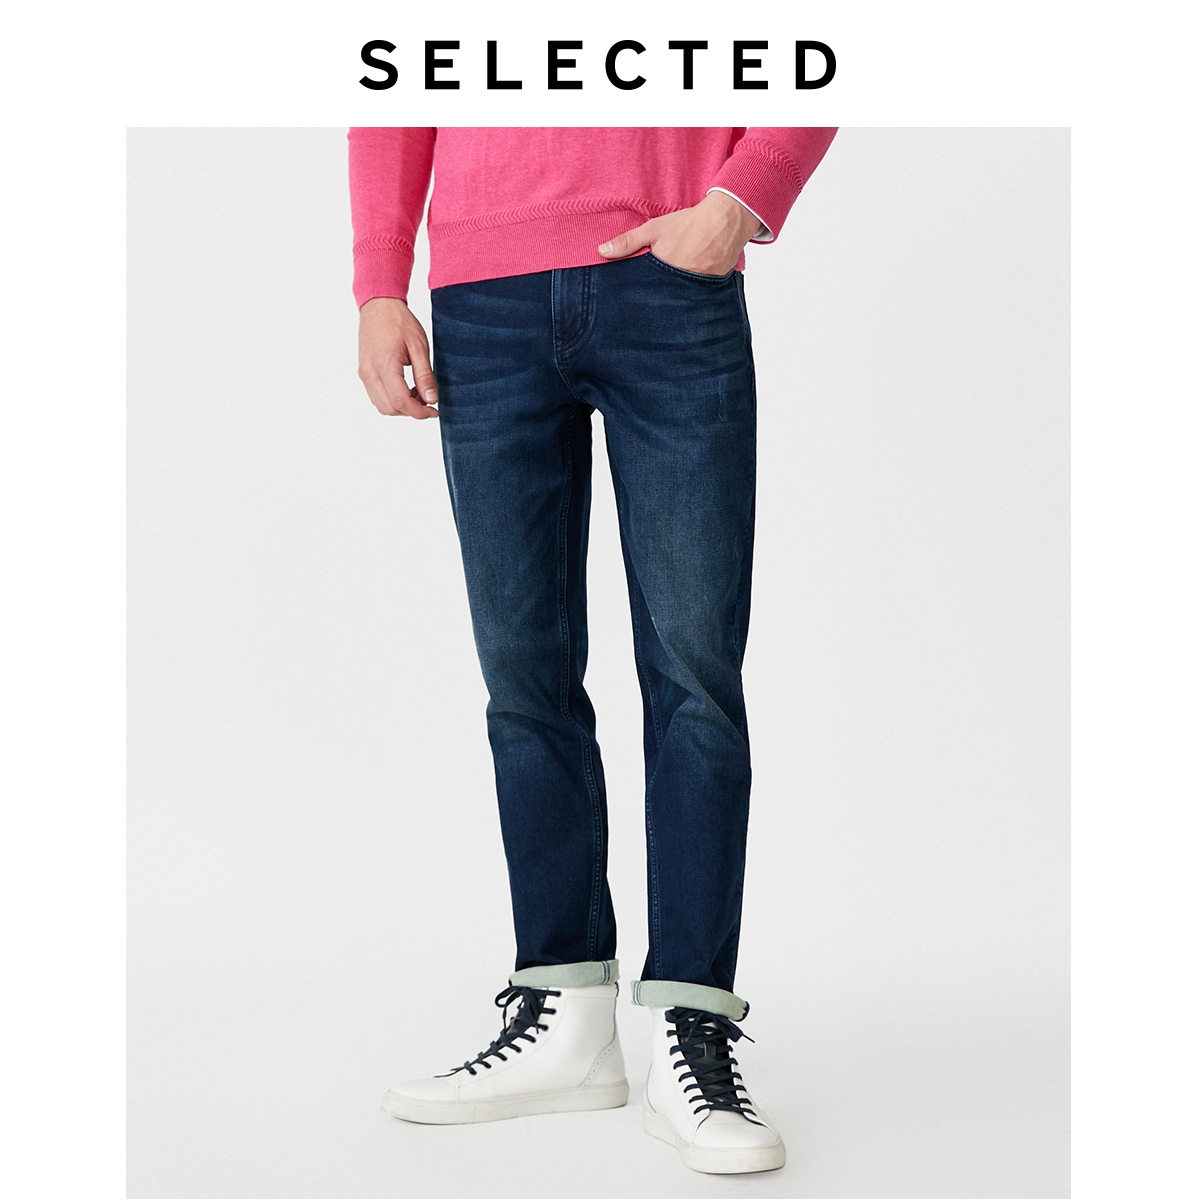 SELECTED Men's Stretch Cotton Denim Pants Straight Casual Regular Fit Jeans R|419432531